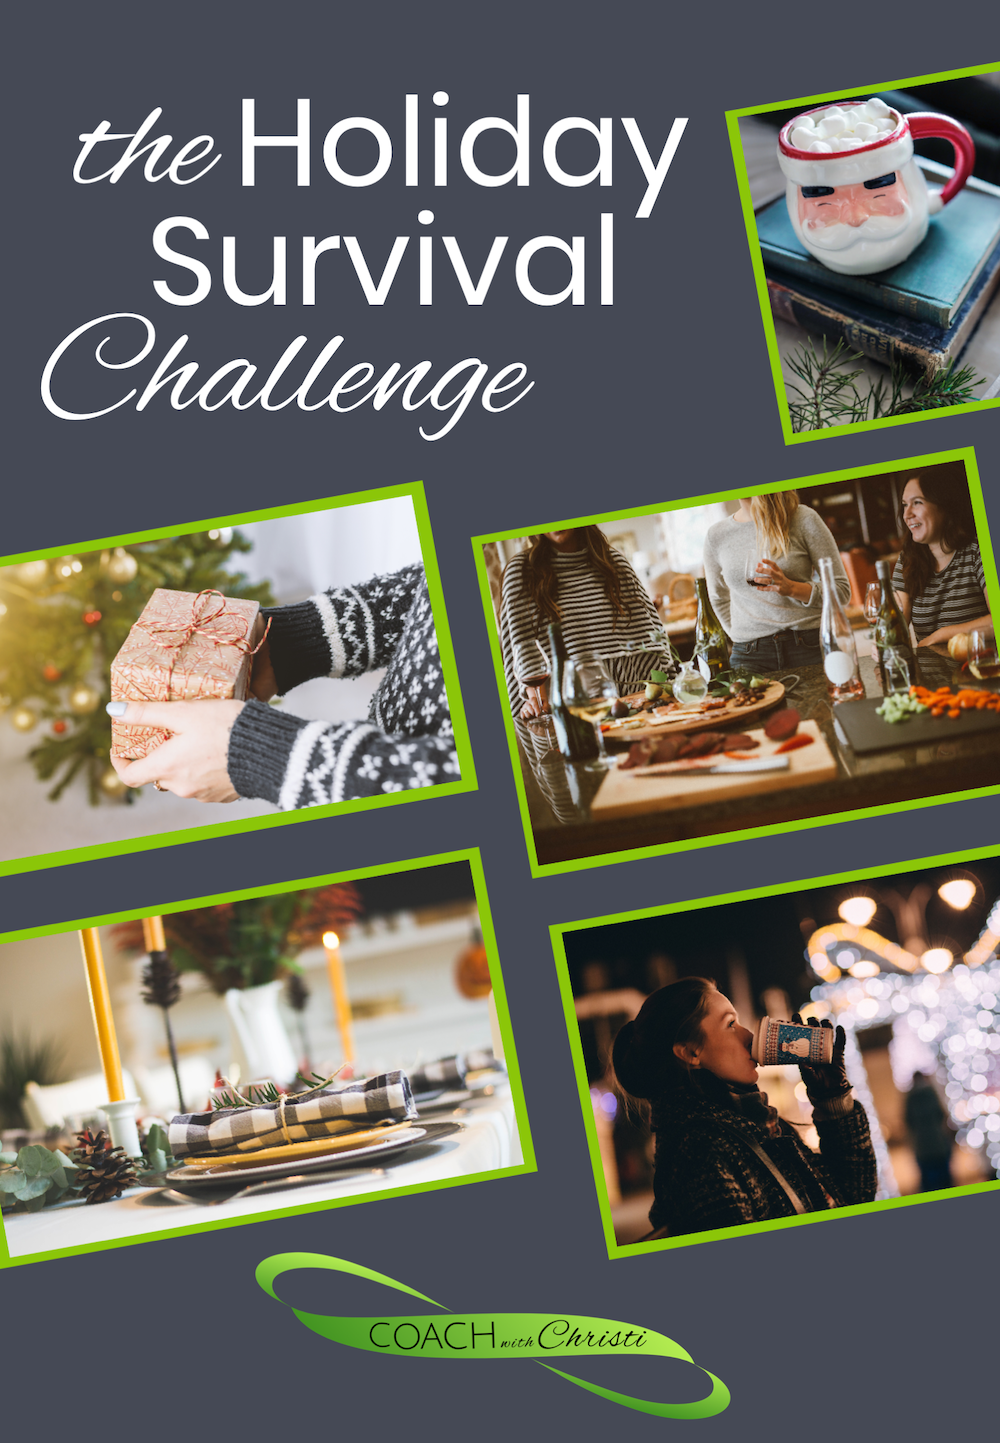 The Holiday Survival Challenge with Coach with Christi - 3-7 Dec 2018